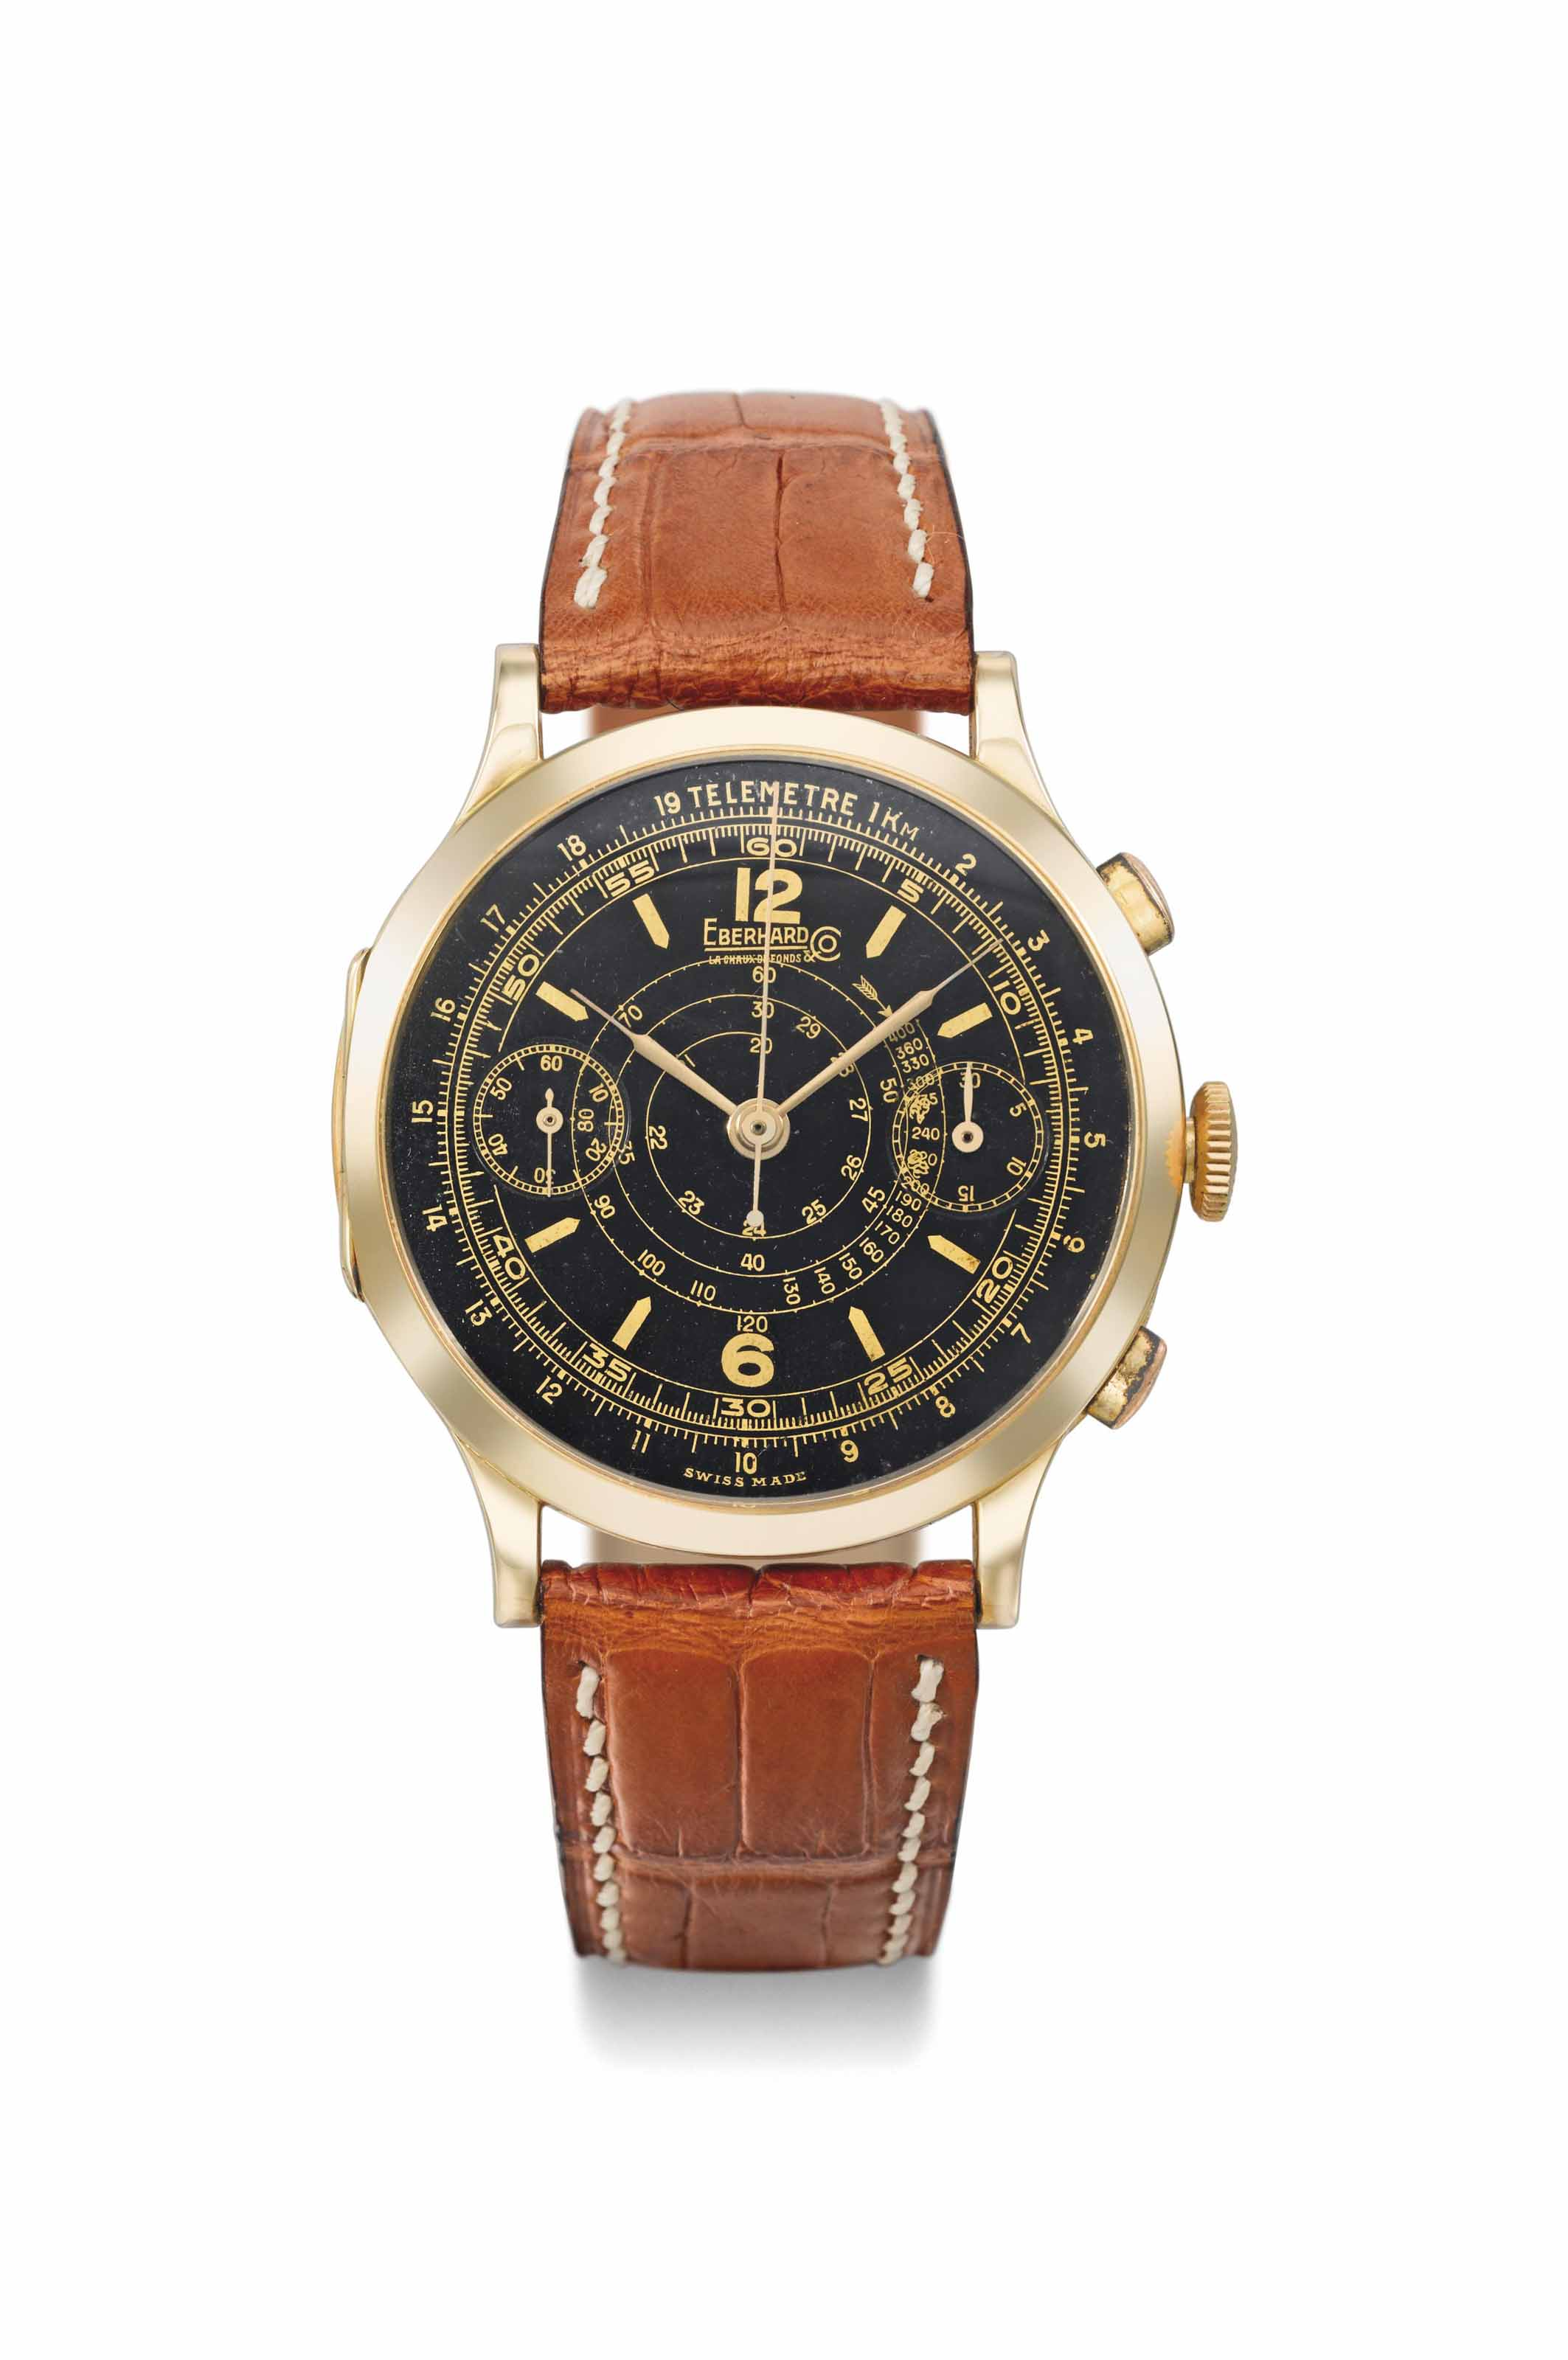 Eberhard. A fine and unusual oversized 18K gold hinged chronograph wristwatch with black dial